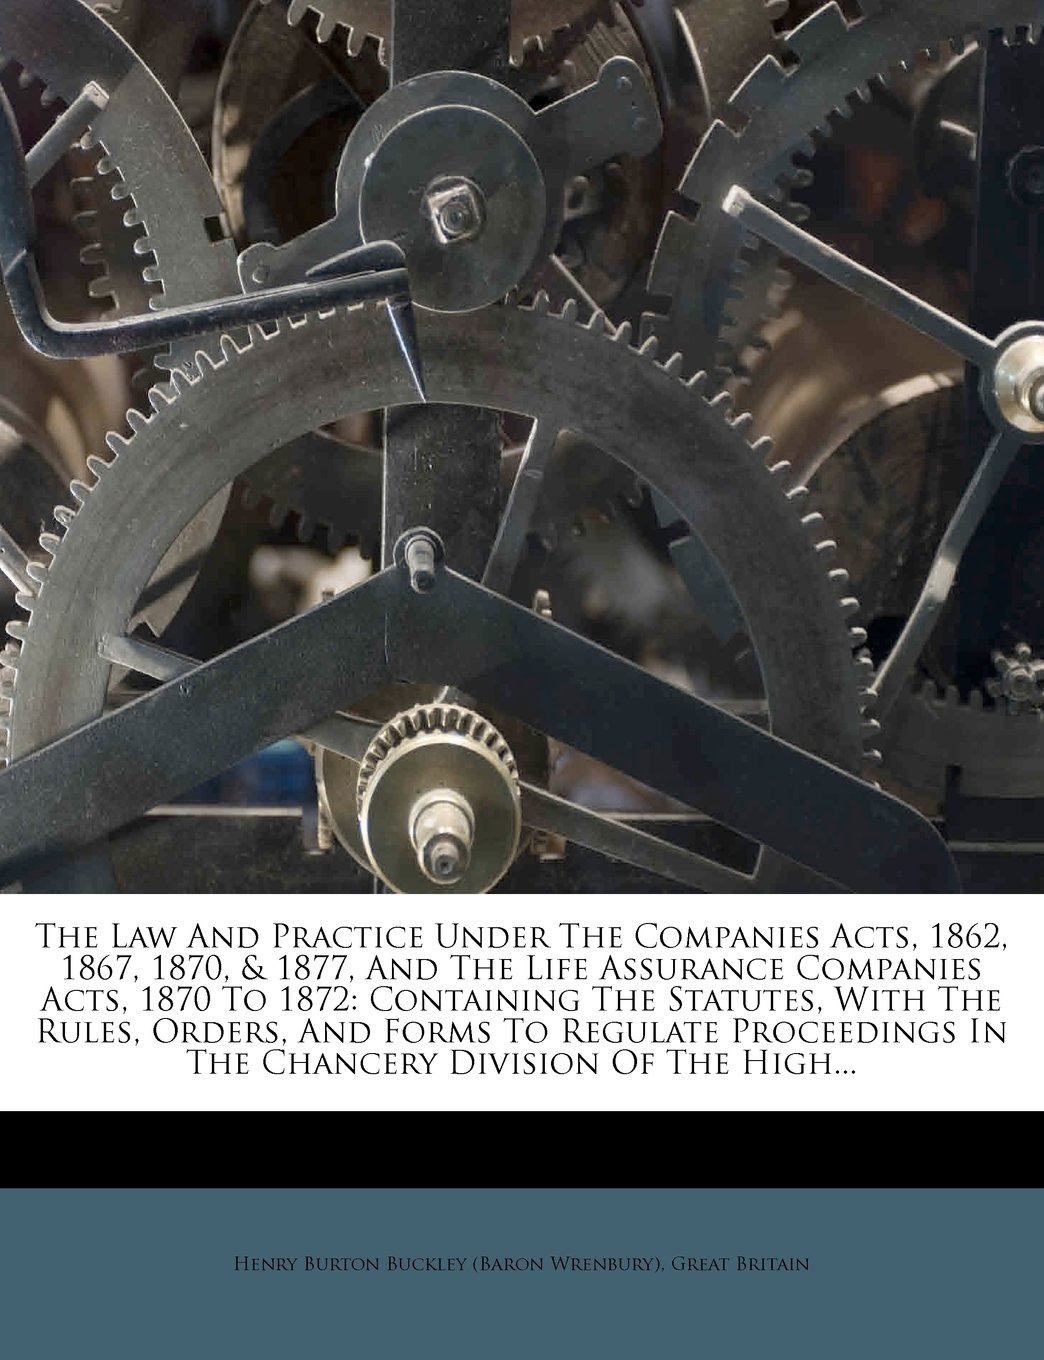 Download The Law And Practice Under The Companies Acts, 1862, 1867, 1870, & 1877, And The Life Assurance Companies Acts, 1870 To 1872: Containing The Statutes, ... In The Chancery Division Of The High... PDF